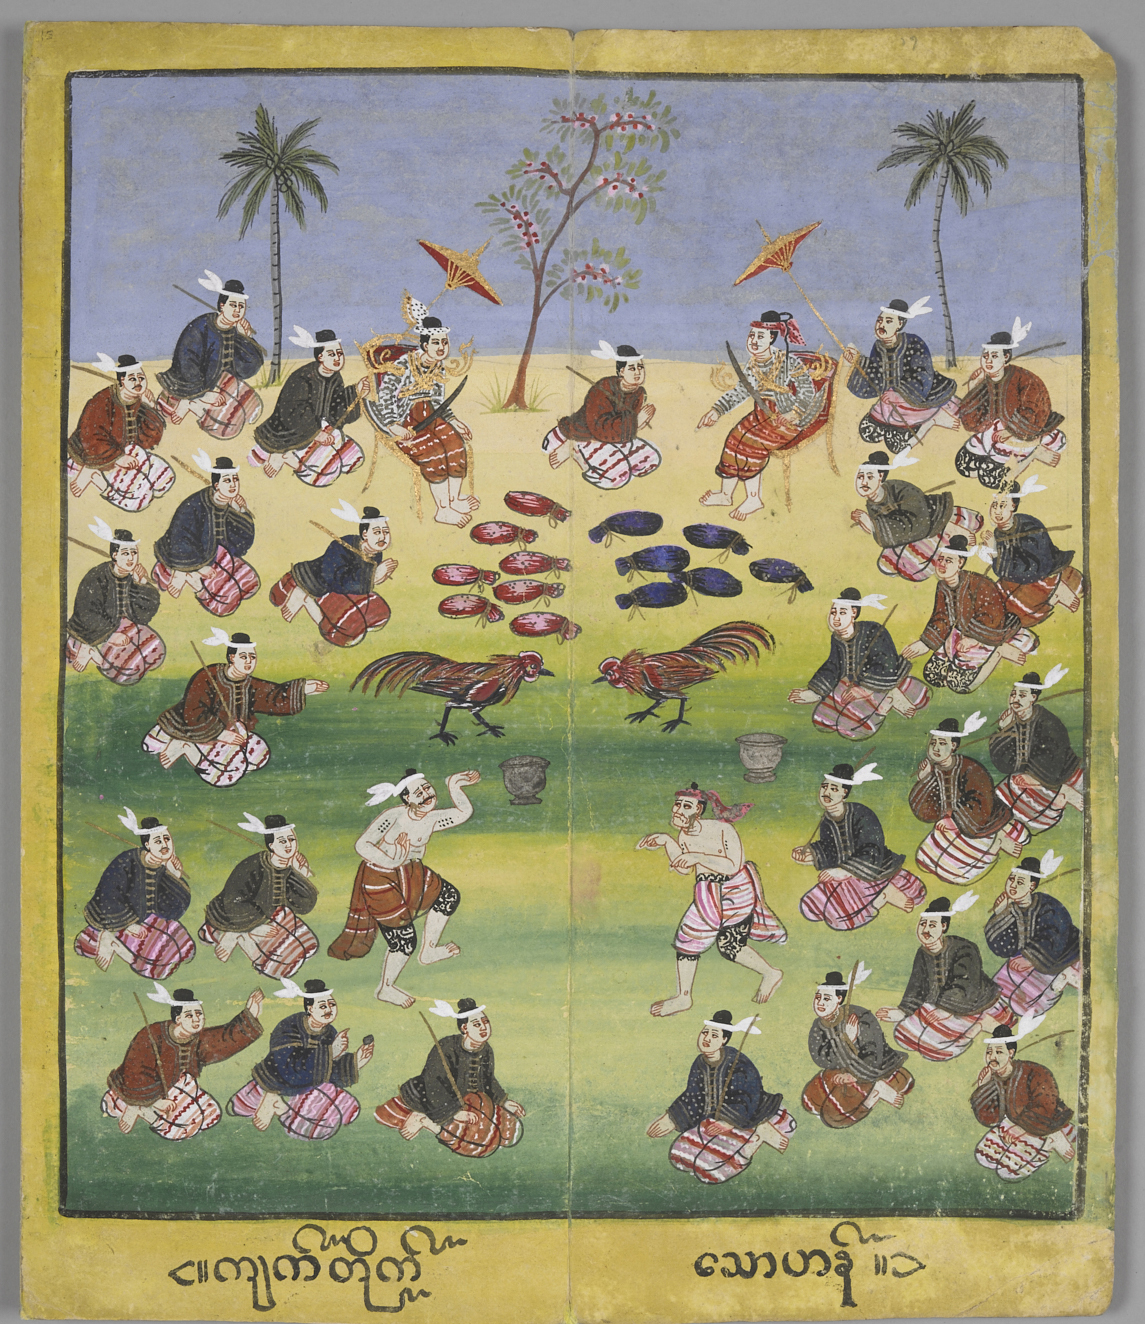 Shown here are two large long legged fowls fighting each other, and people betting. Cock fighting was a favourite game of village people in the past, and despite being condemned by religion, people still bet heavily on their birds. Credit: British Library [Licensed under Public Domain]